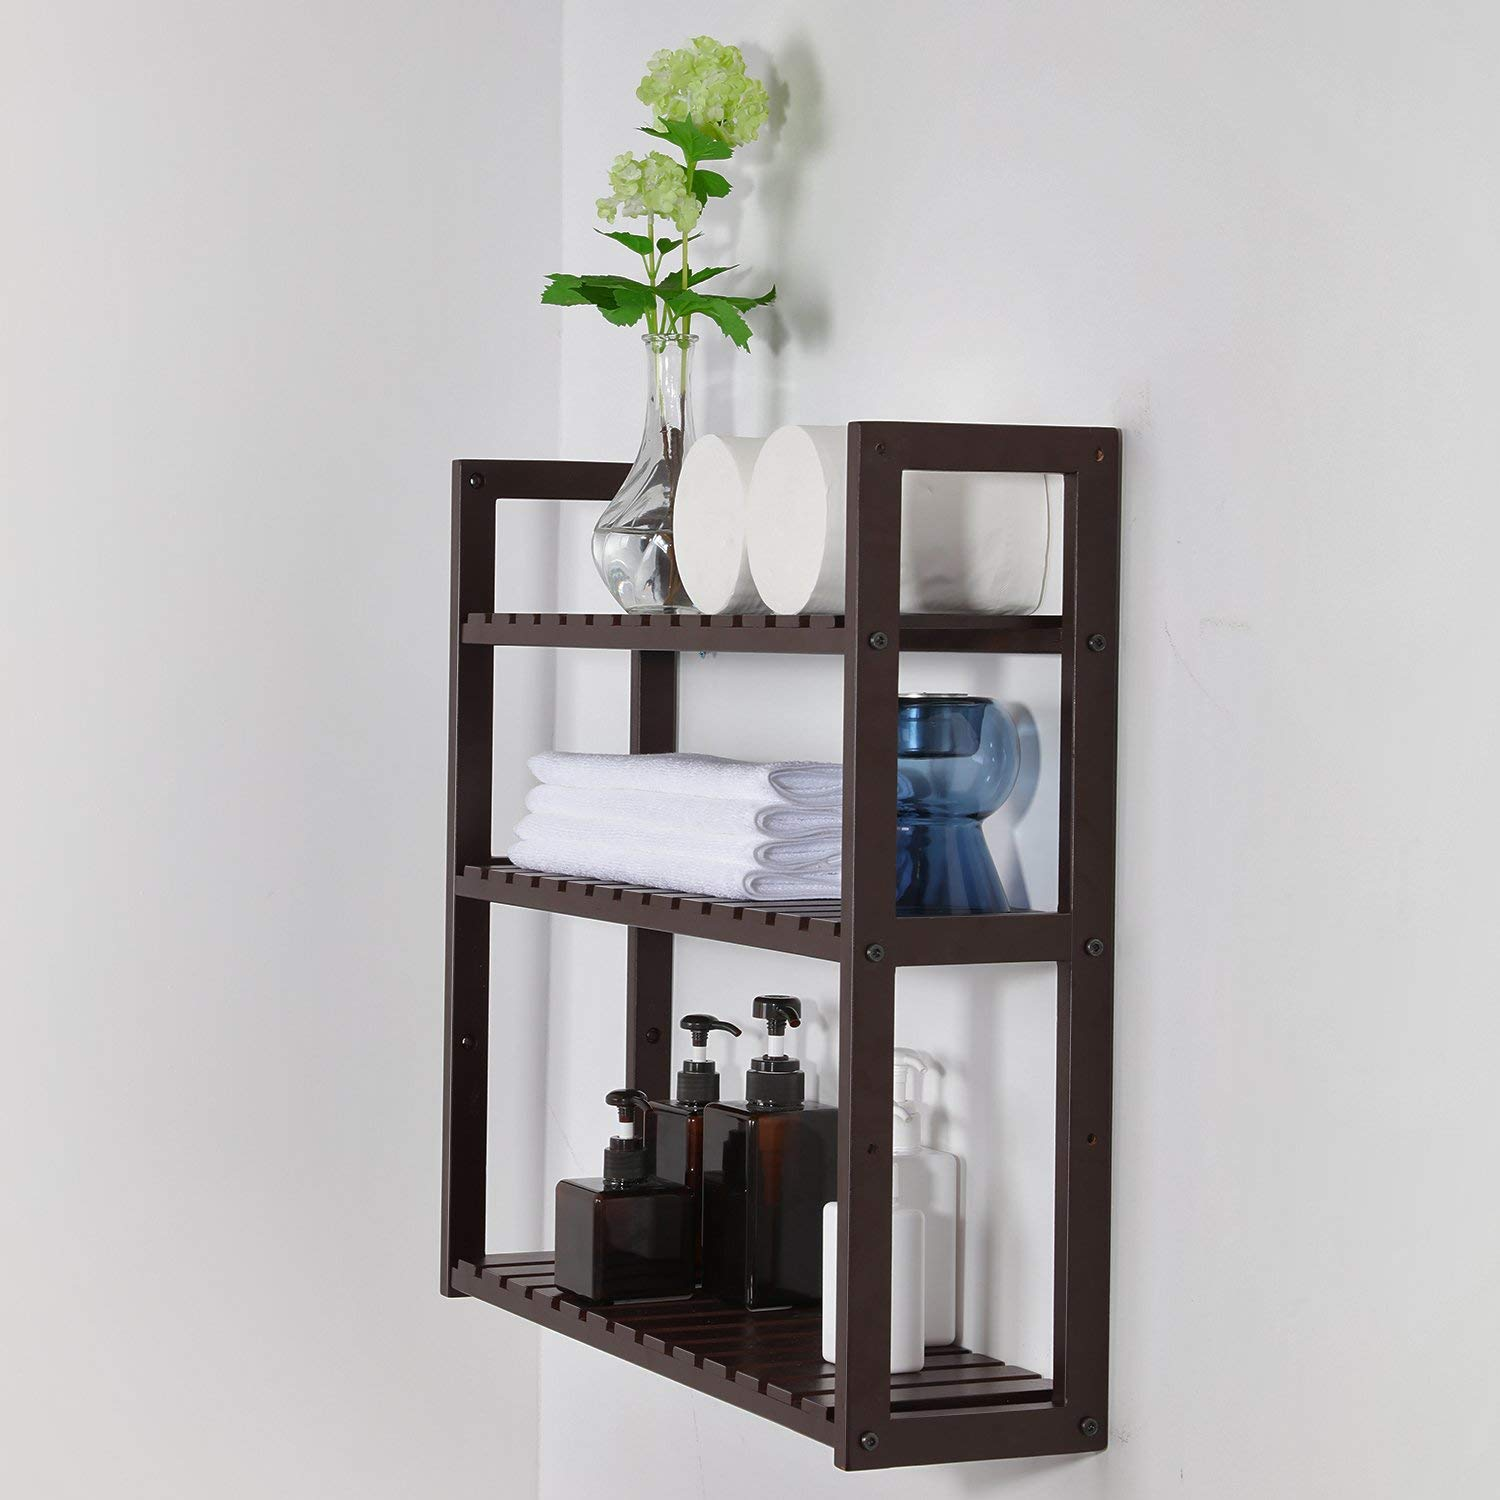 SONGMICS 3-Tier Small Utility Storage Shelf Rack